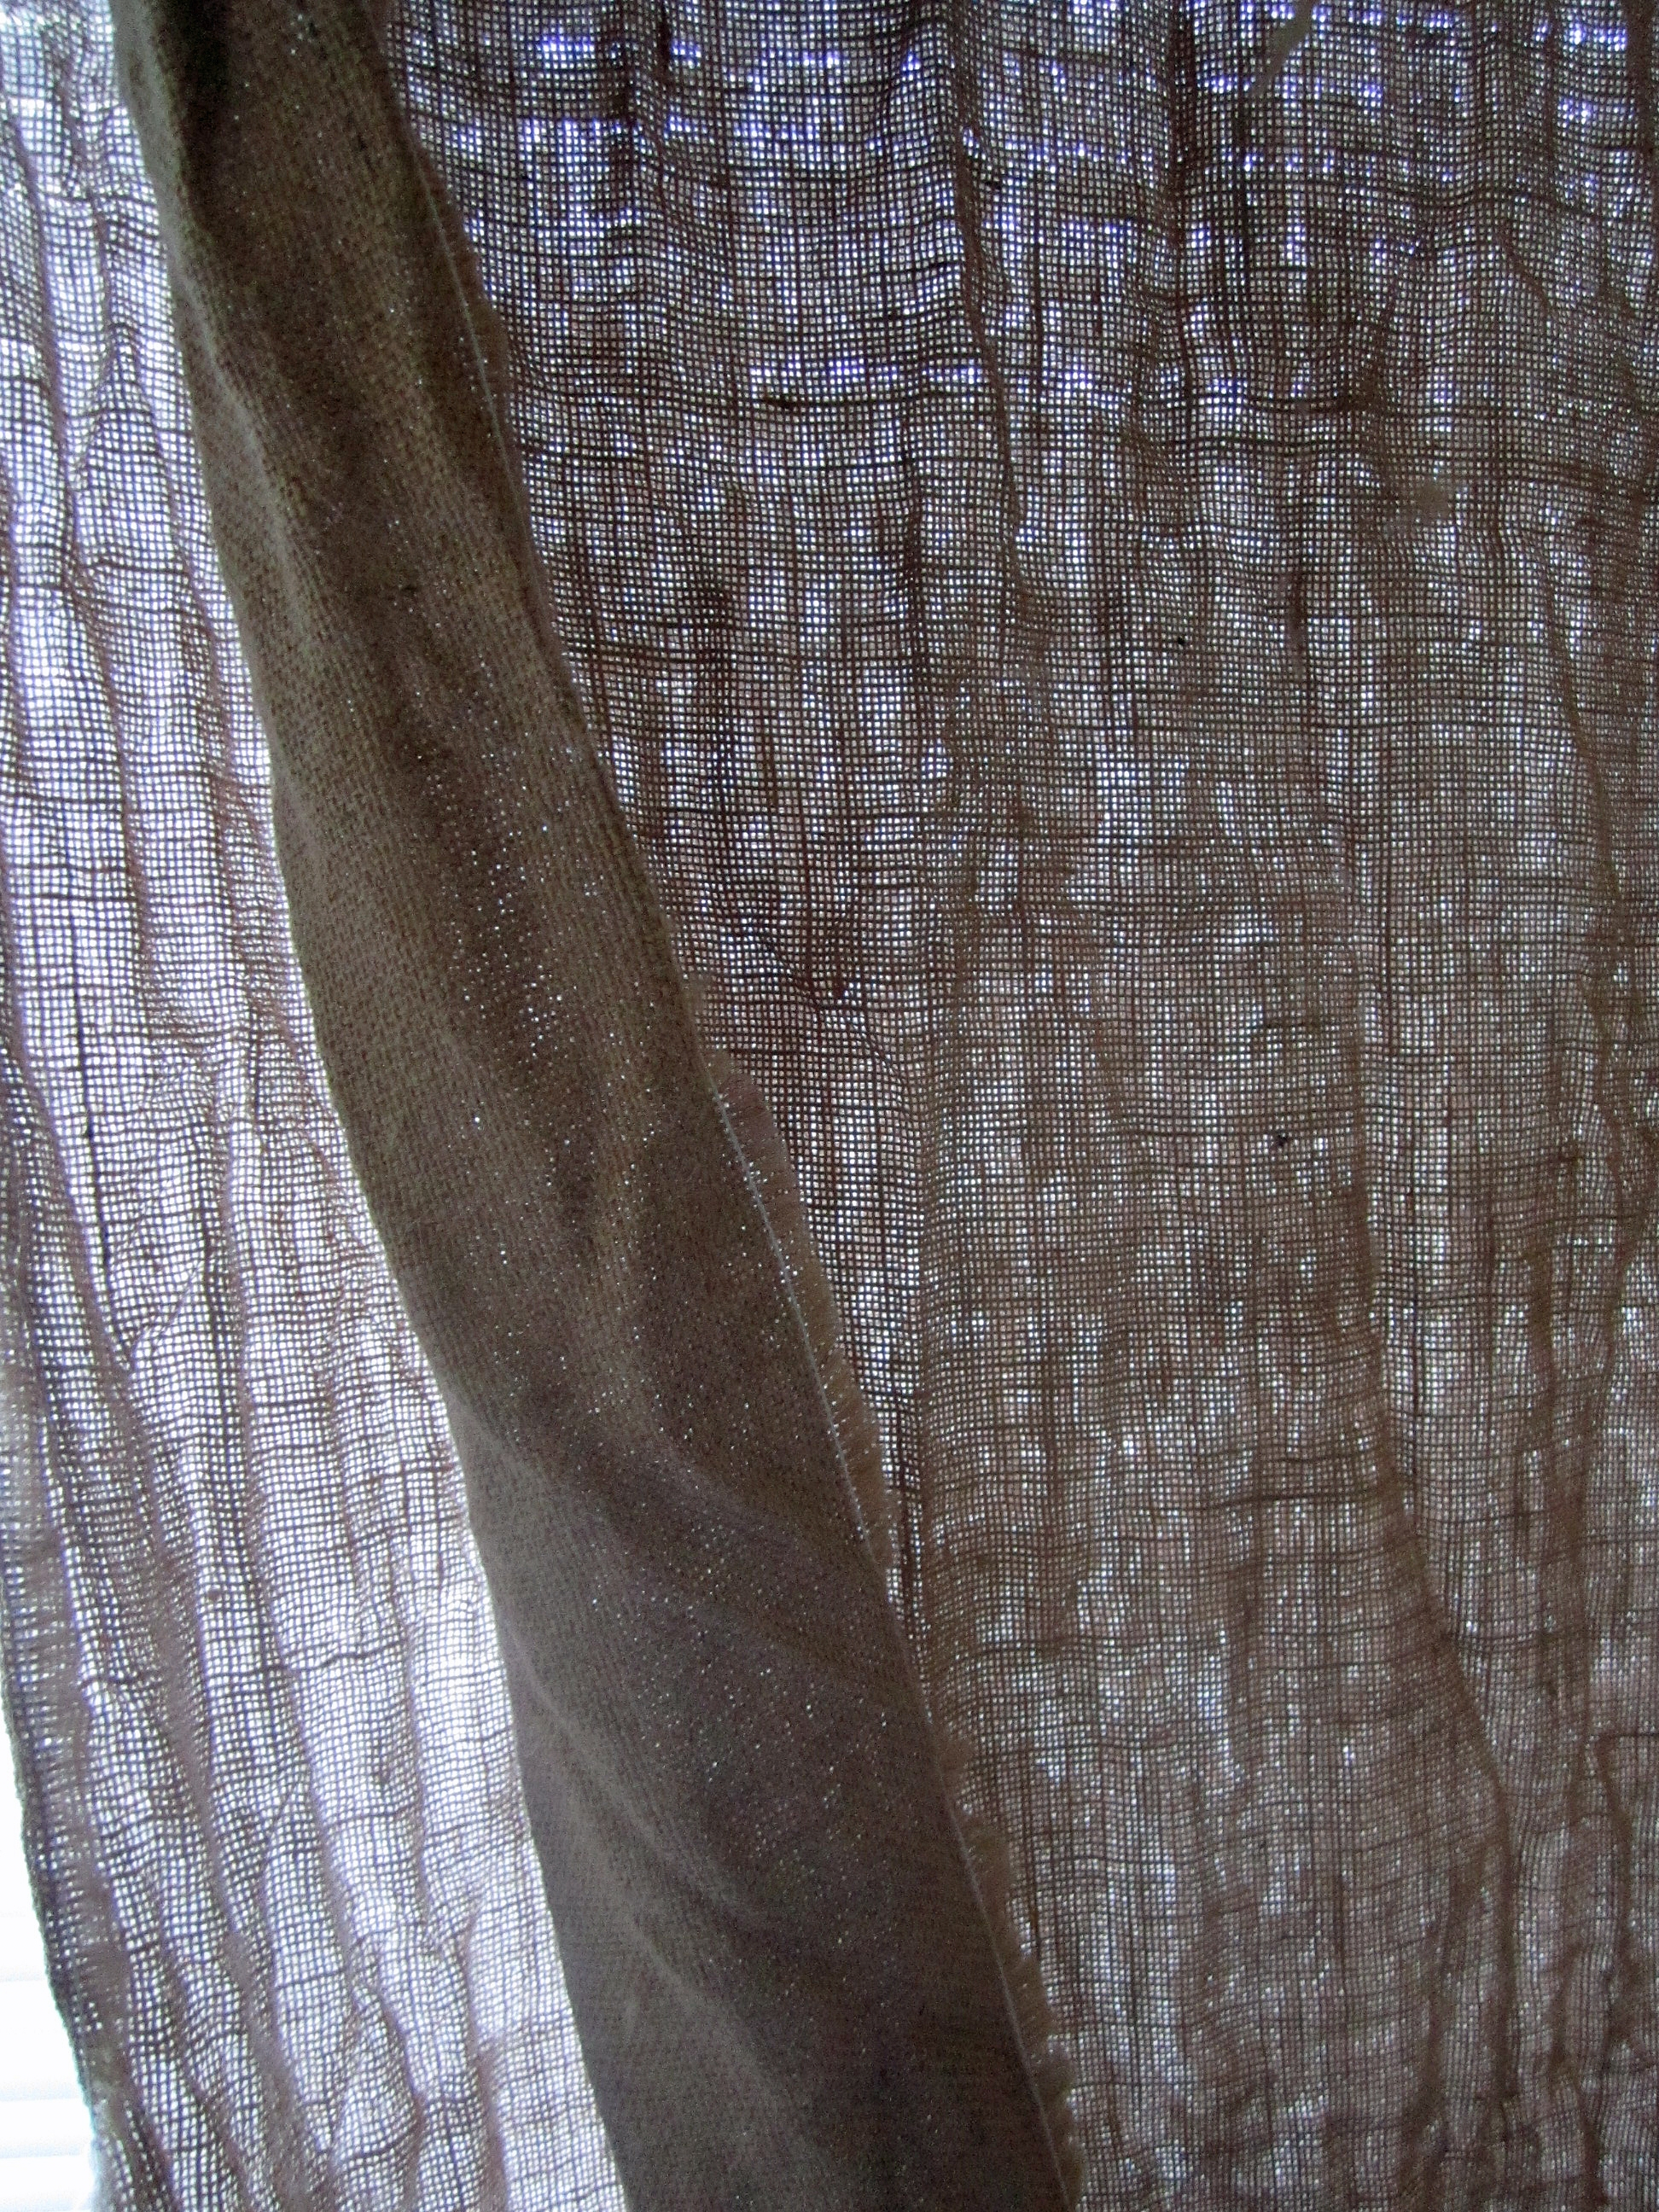 Hessian Curtains Designromp Within Hessian Curtains (Image 12 of 15)